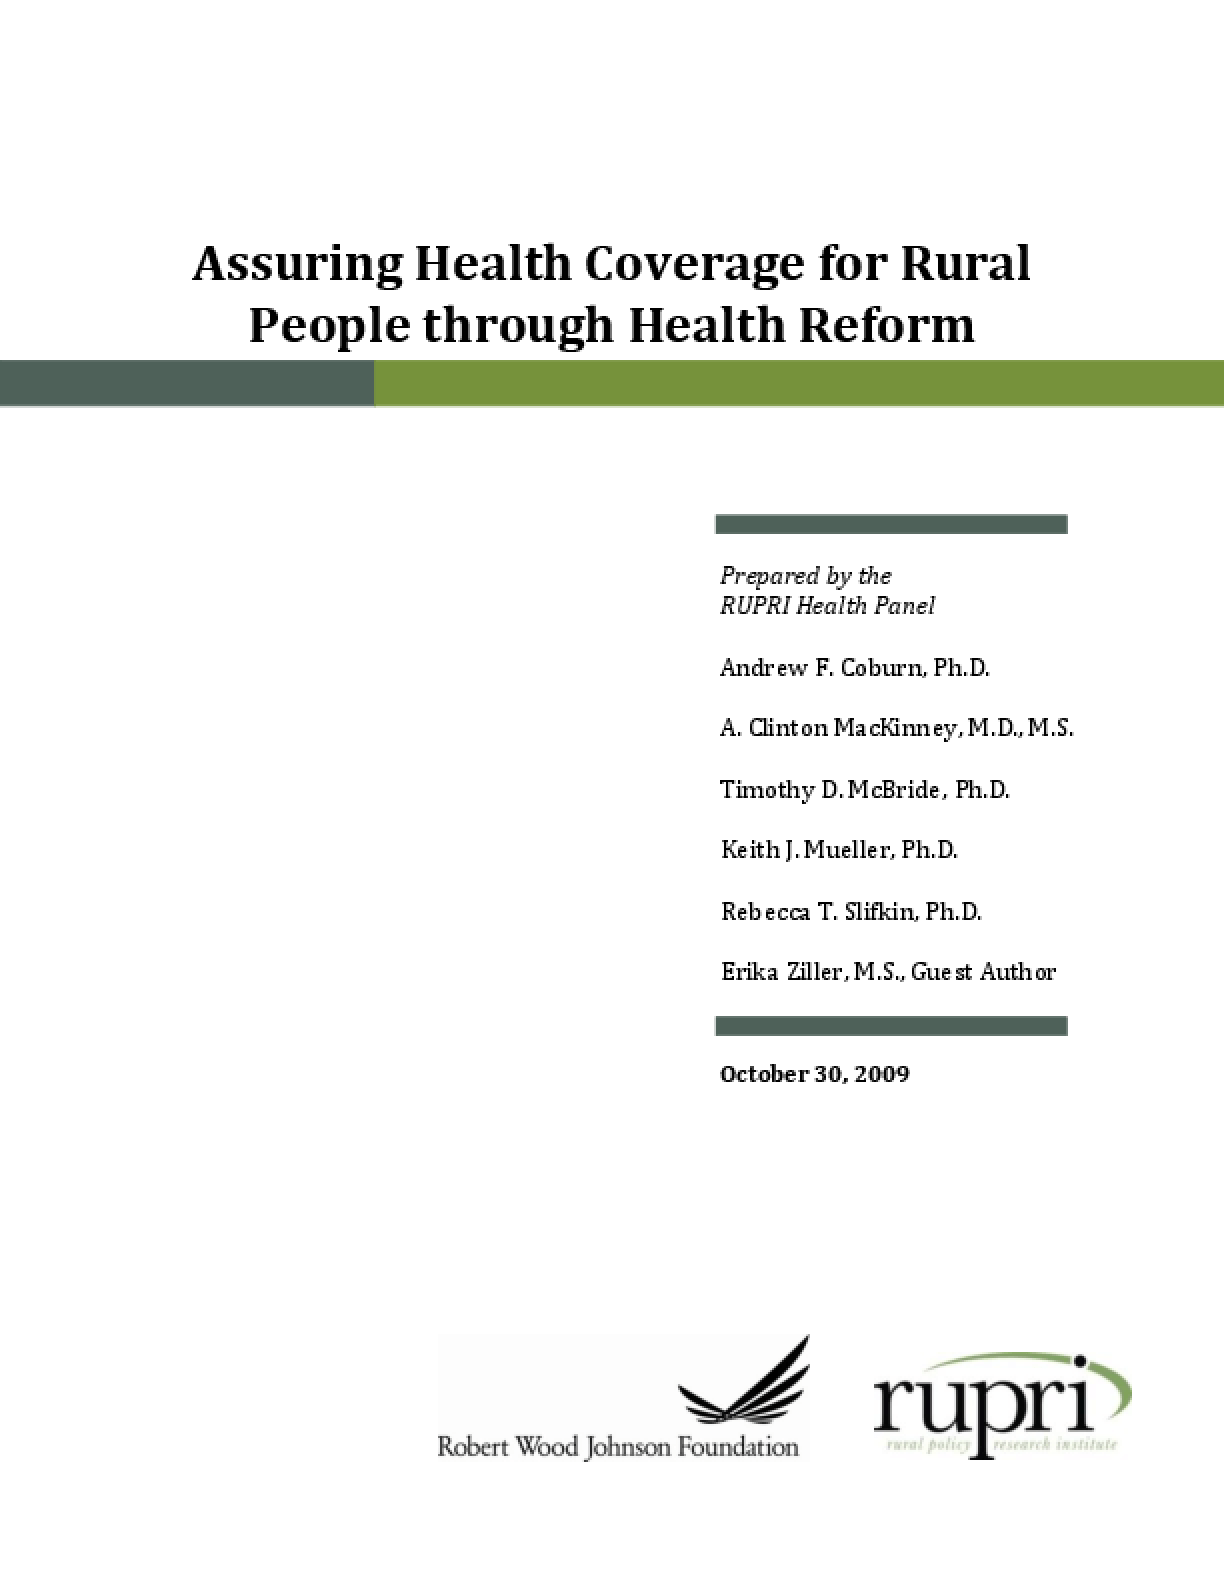 Assuring Health Coverage for Rural People Through Health Reform